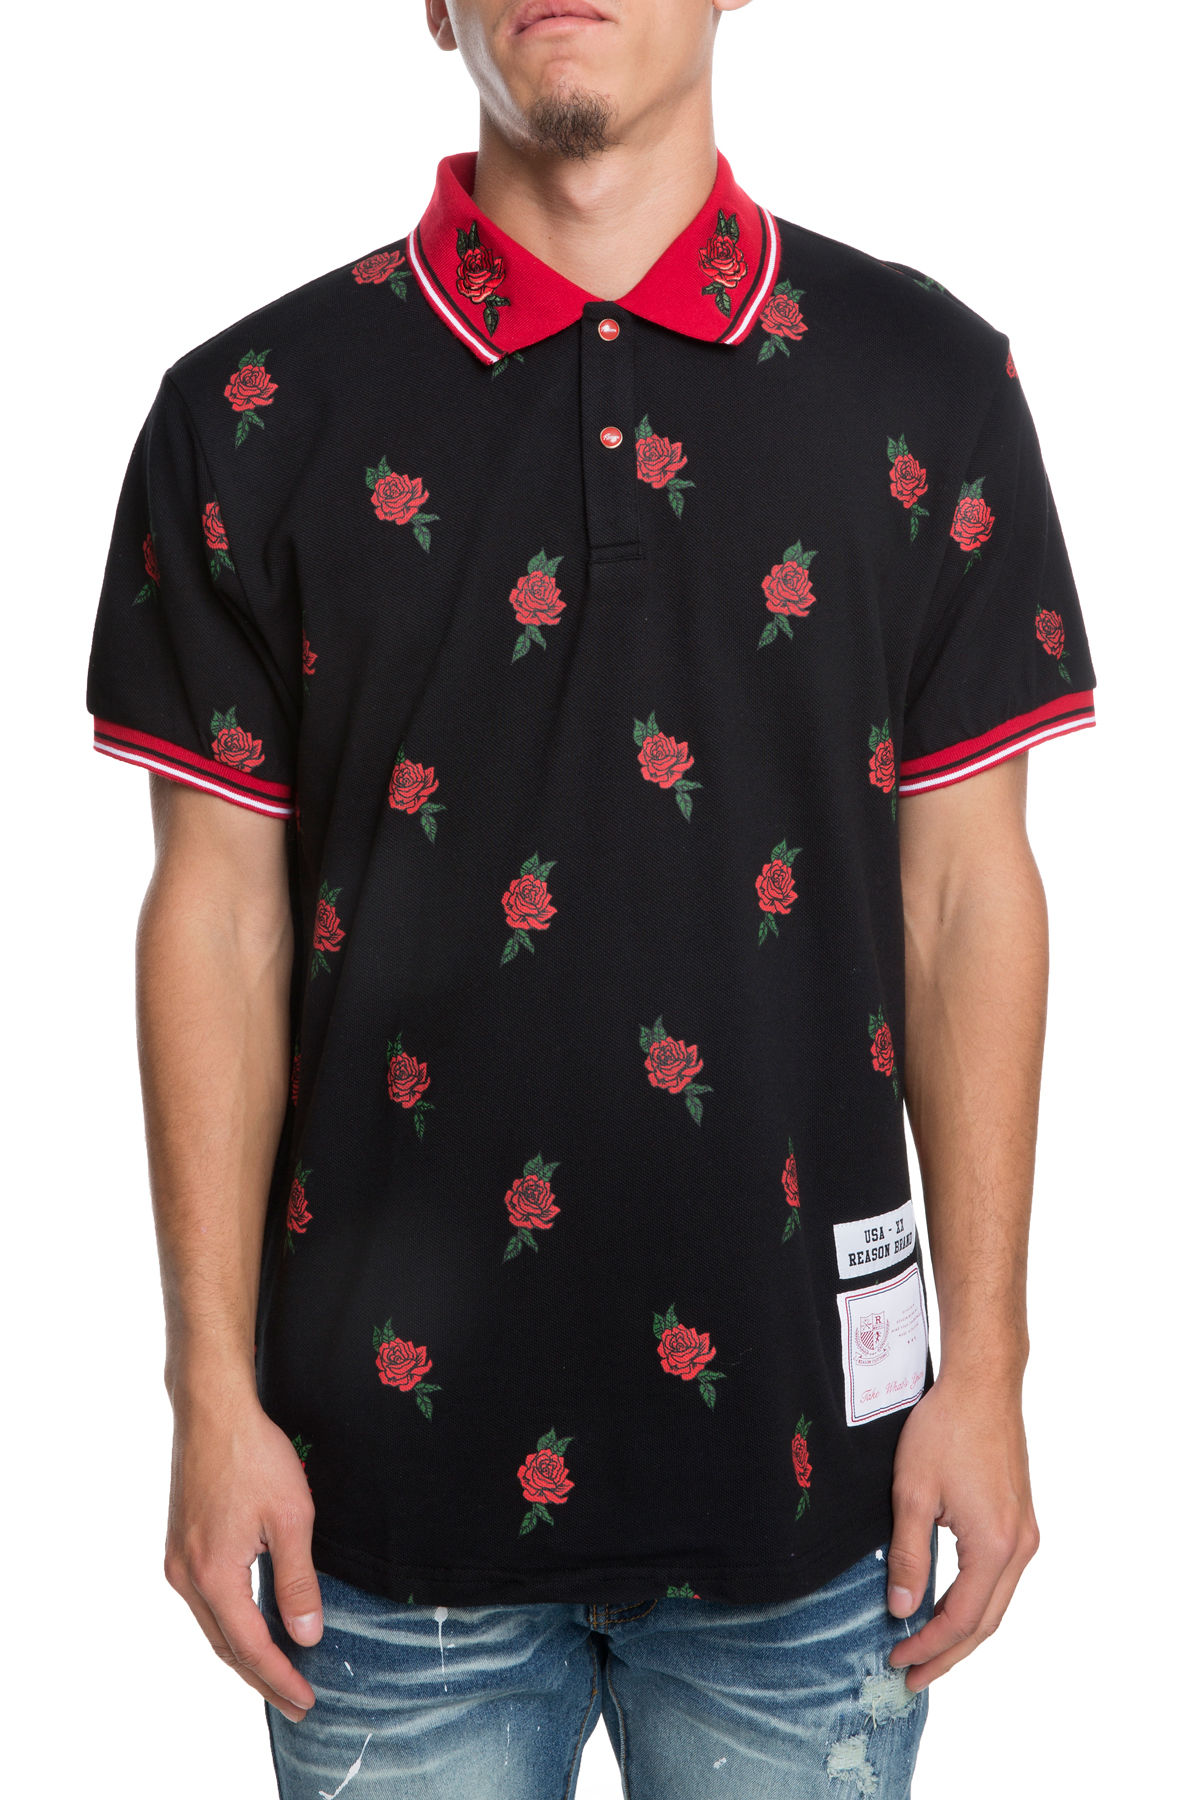 Image of The All Over Roses Polo in Black